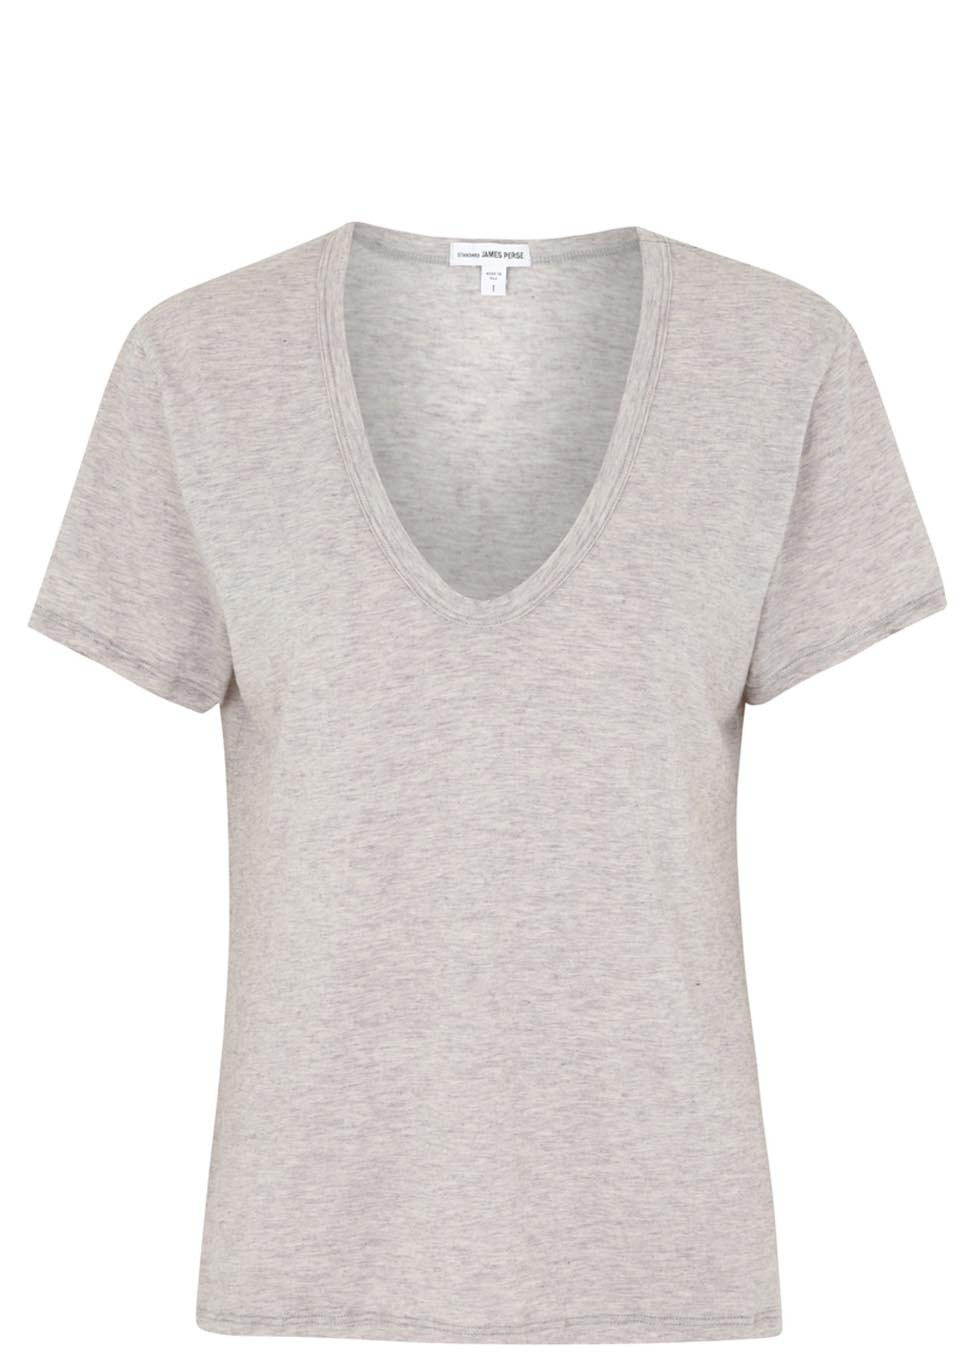 Grey Cotton And Cashmere Blend T Shirt - neckline: low v-neck; pattern: plain; style: t-shirt; predominant colour: light grey; occasions: casual, creative work; length: standard; fibres: cotton - mix; fit: body skimming; sleeve length: short sleeve; sleeve style: standard; texture group: jersey - stretchy/drapey; season: s/s 2014